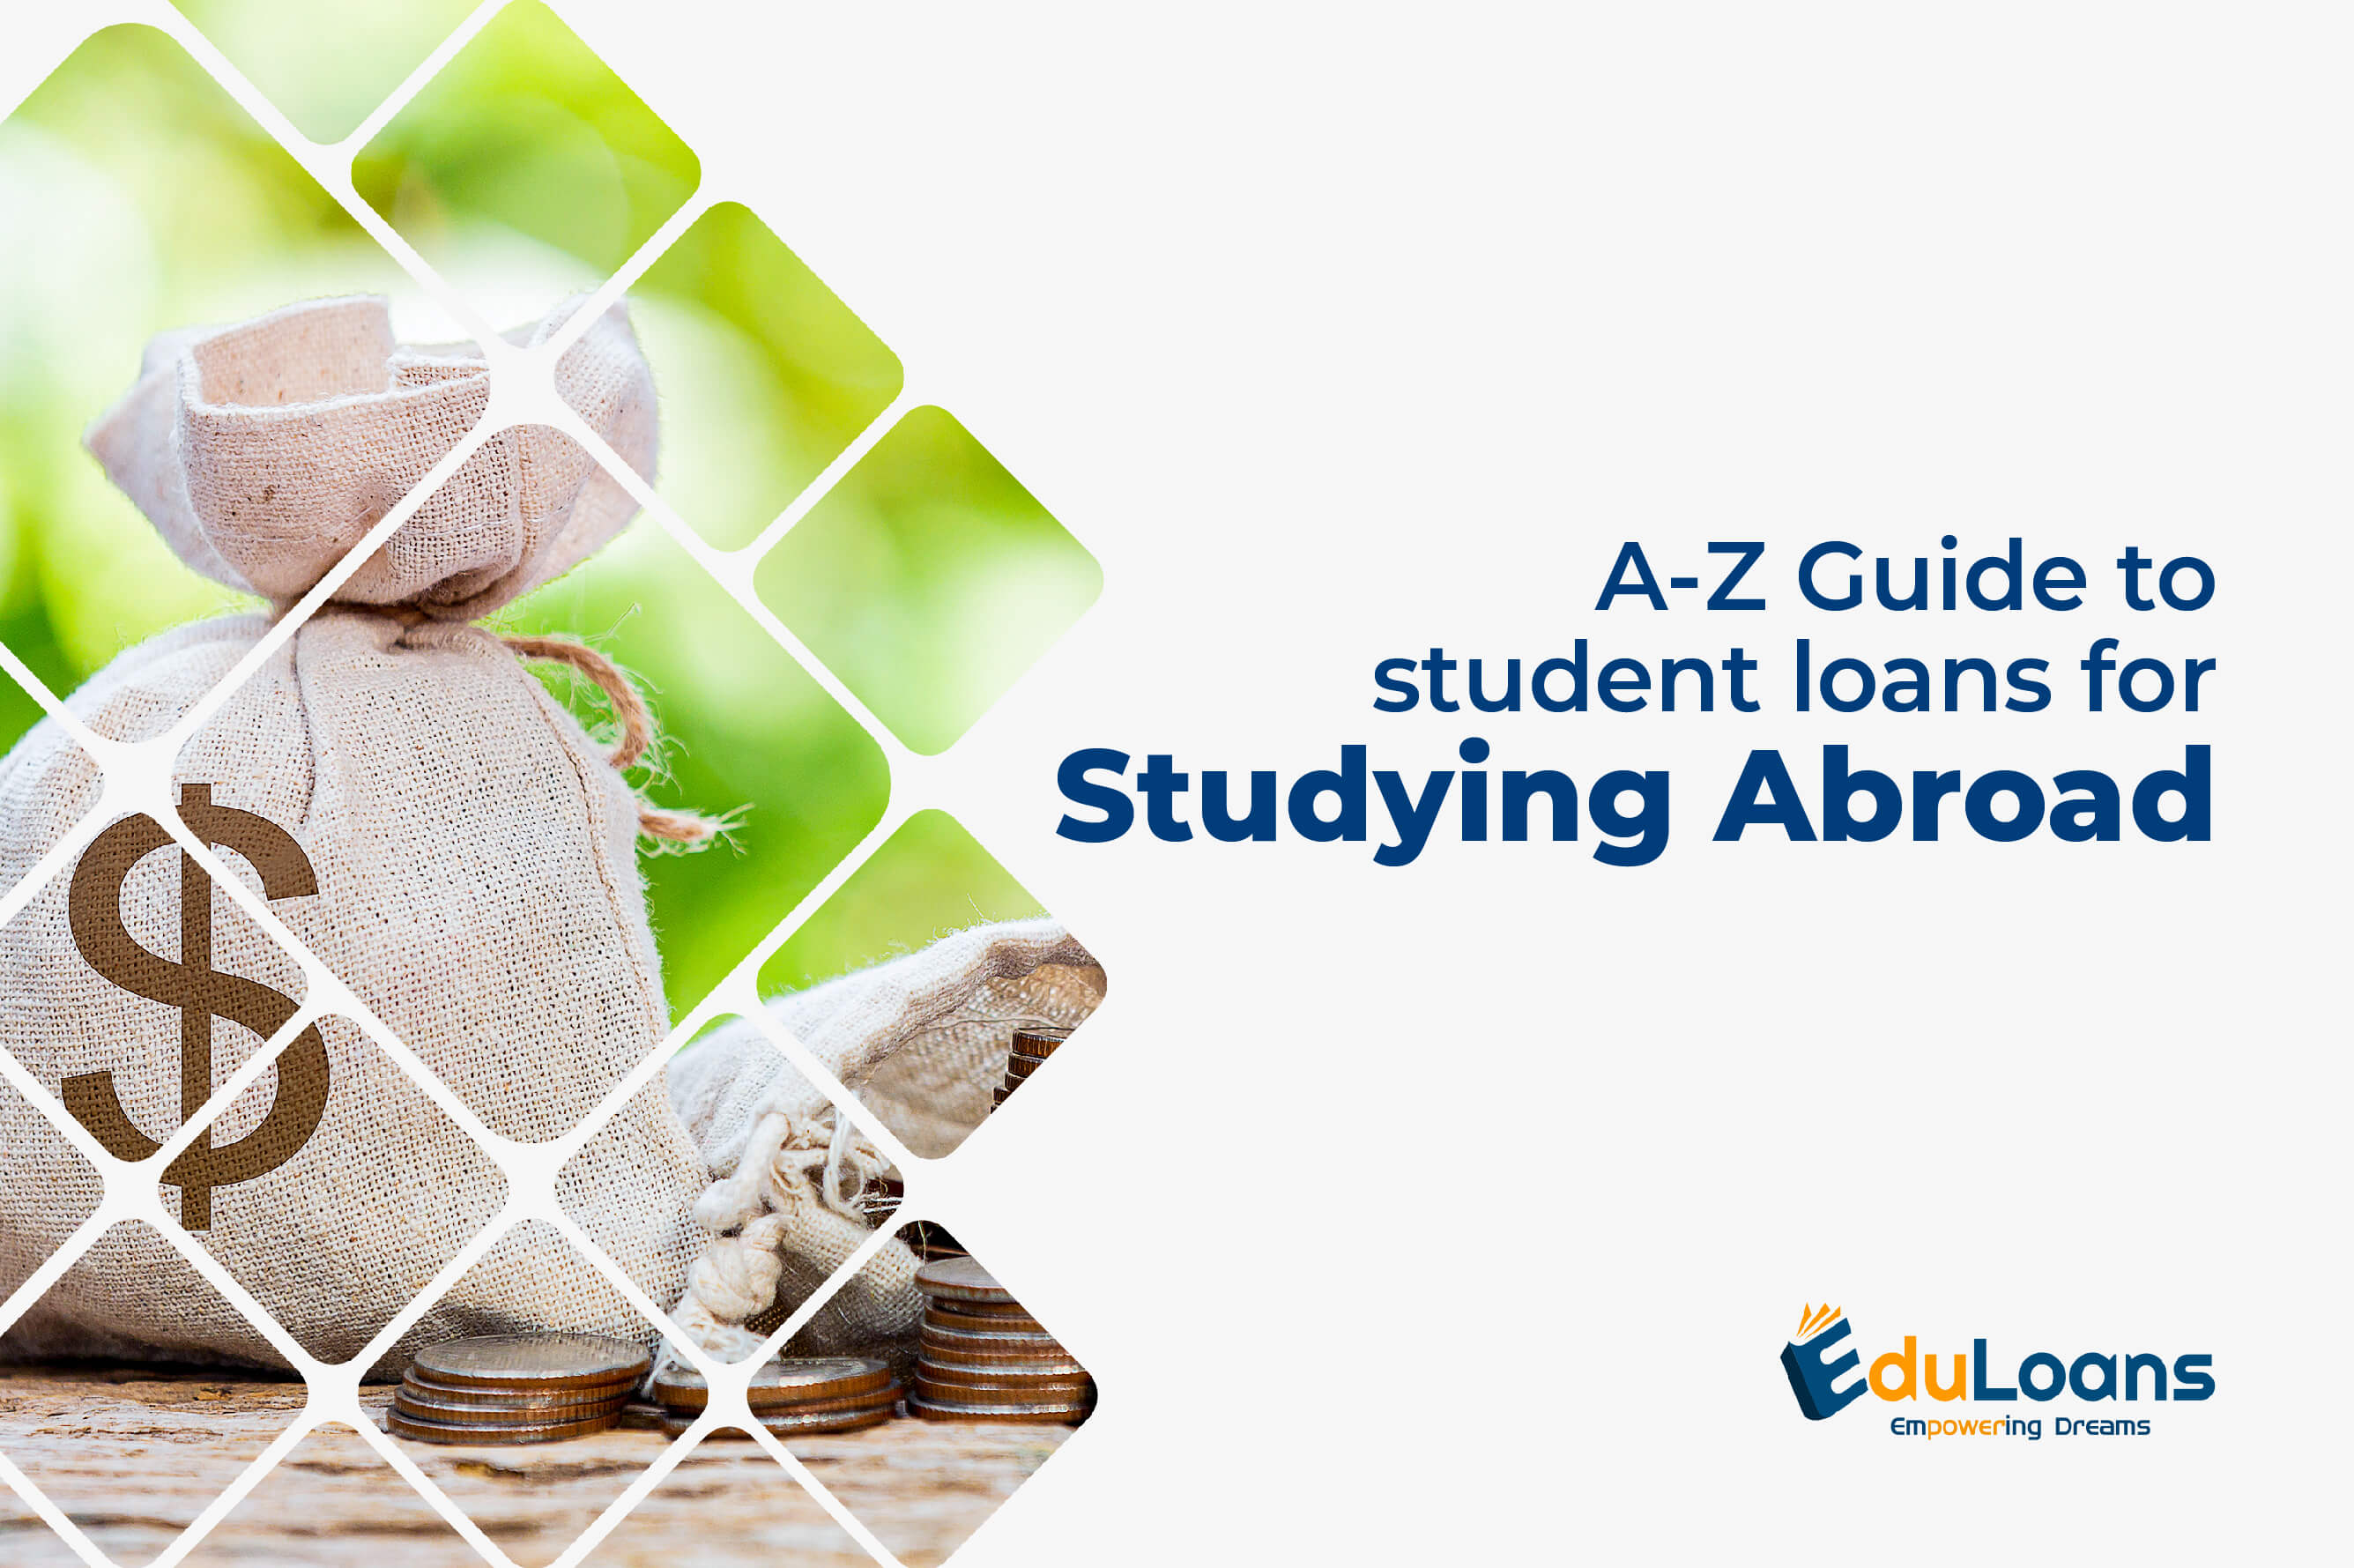 A-Z Guide to Student Loans for Studying Abroad